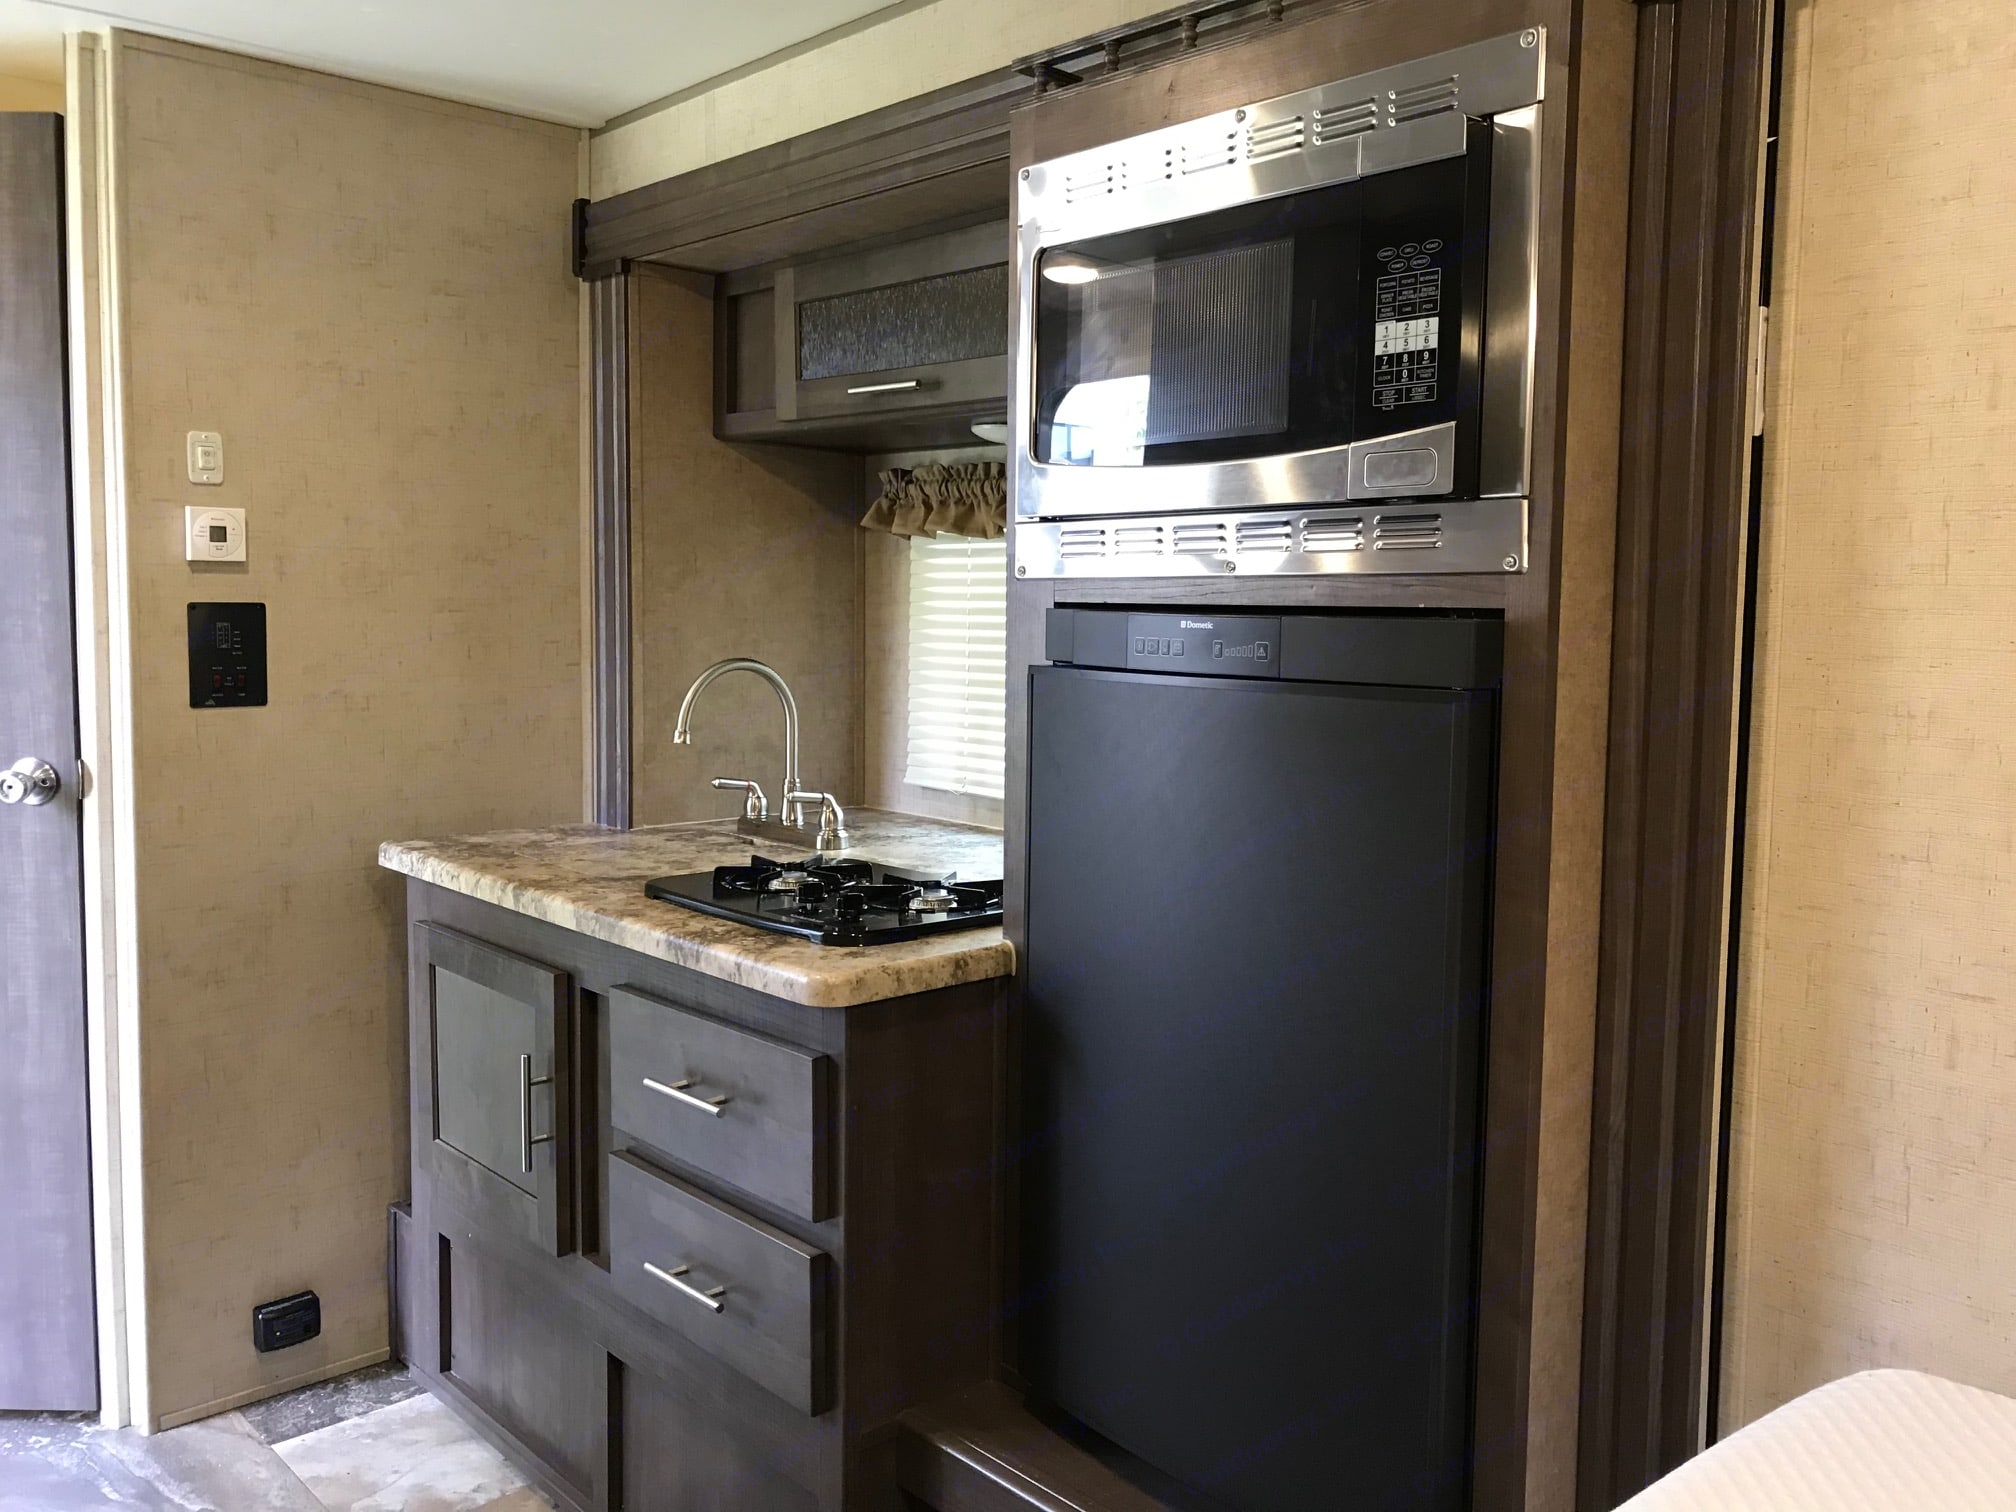 Microwave / convection oven, 3.7 cubic foot refrigerator / freezer. Forest River R-Pod 2017